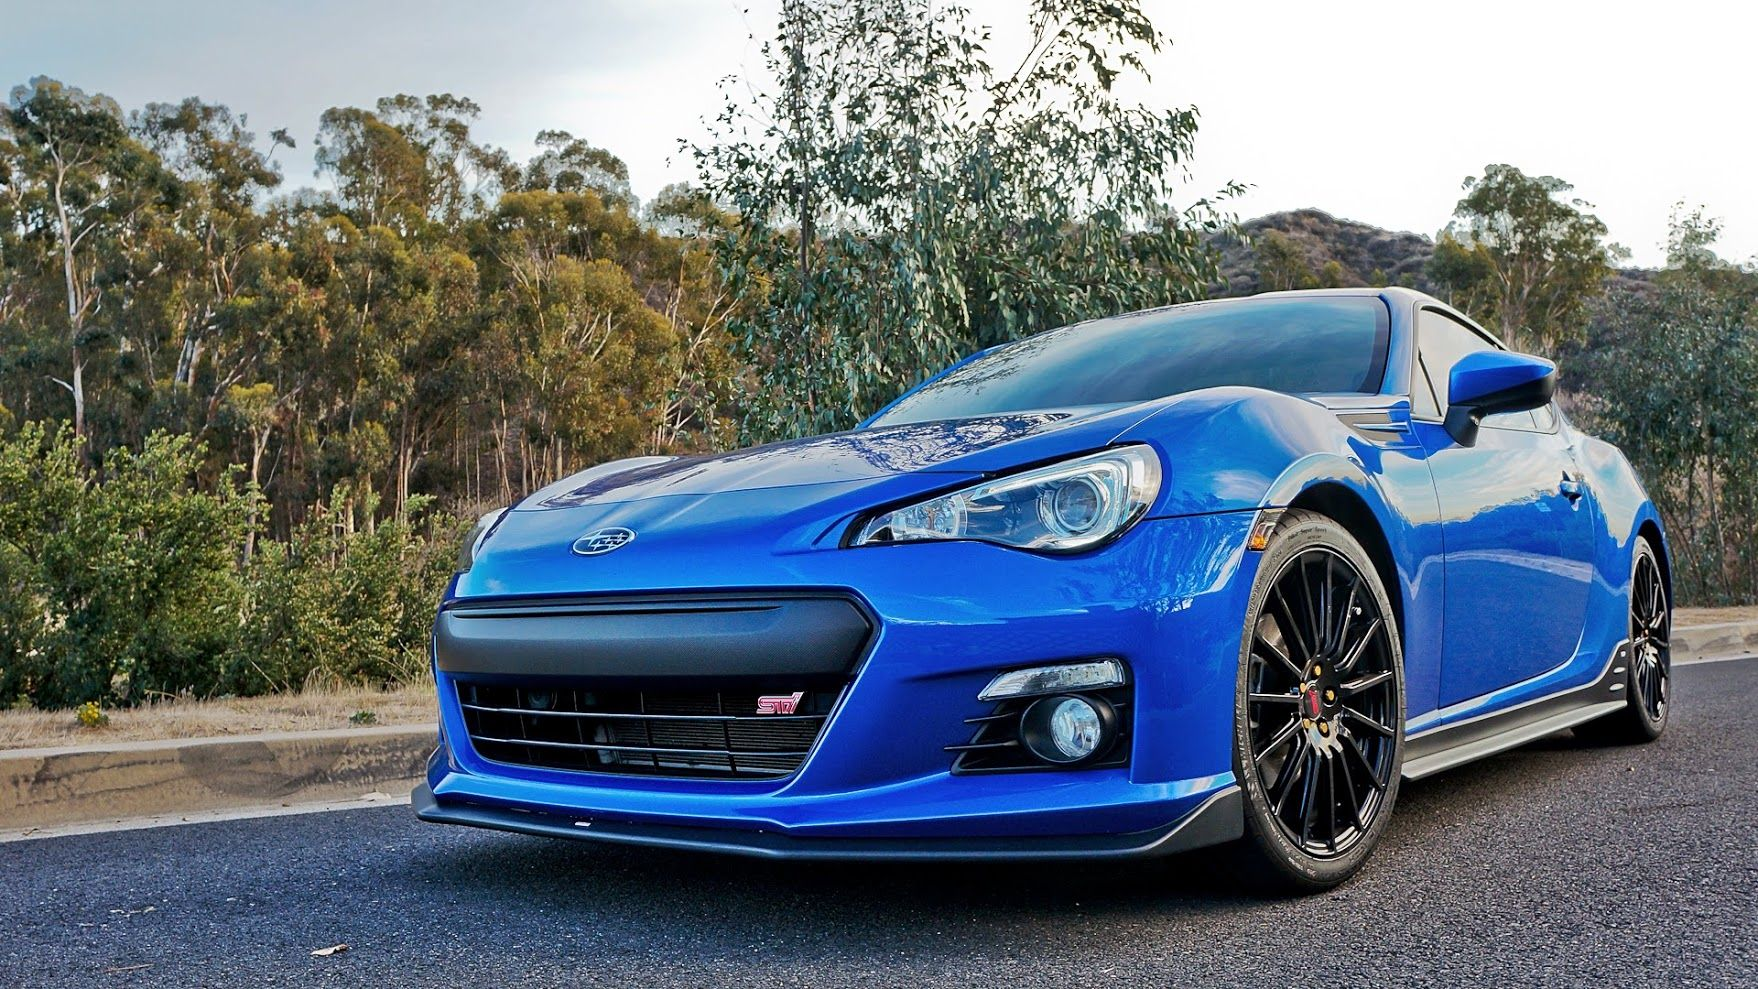 World rally blue brz compilation page 22 scion fr s forum subaru